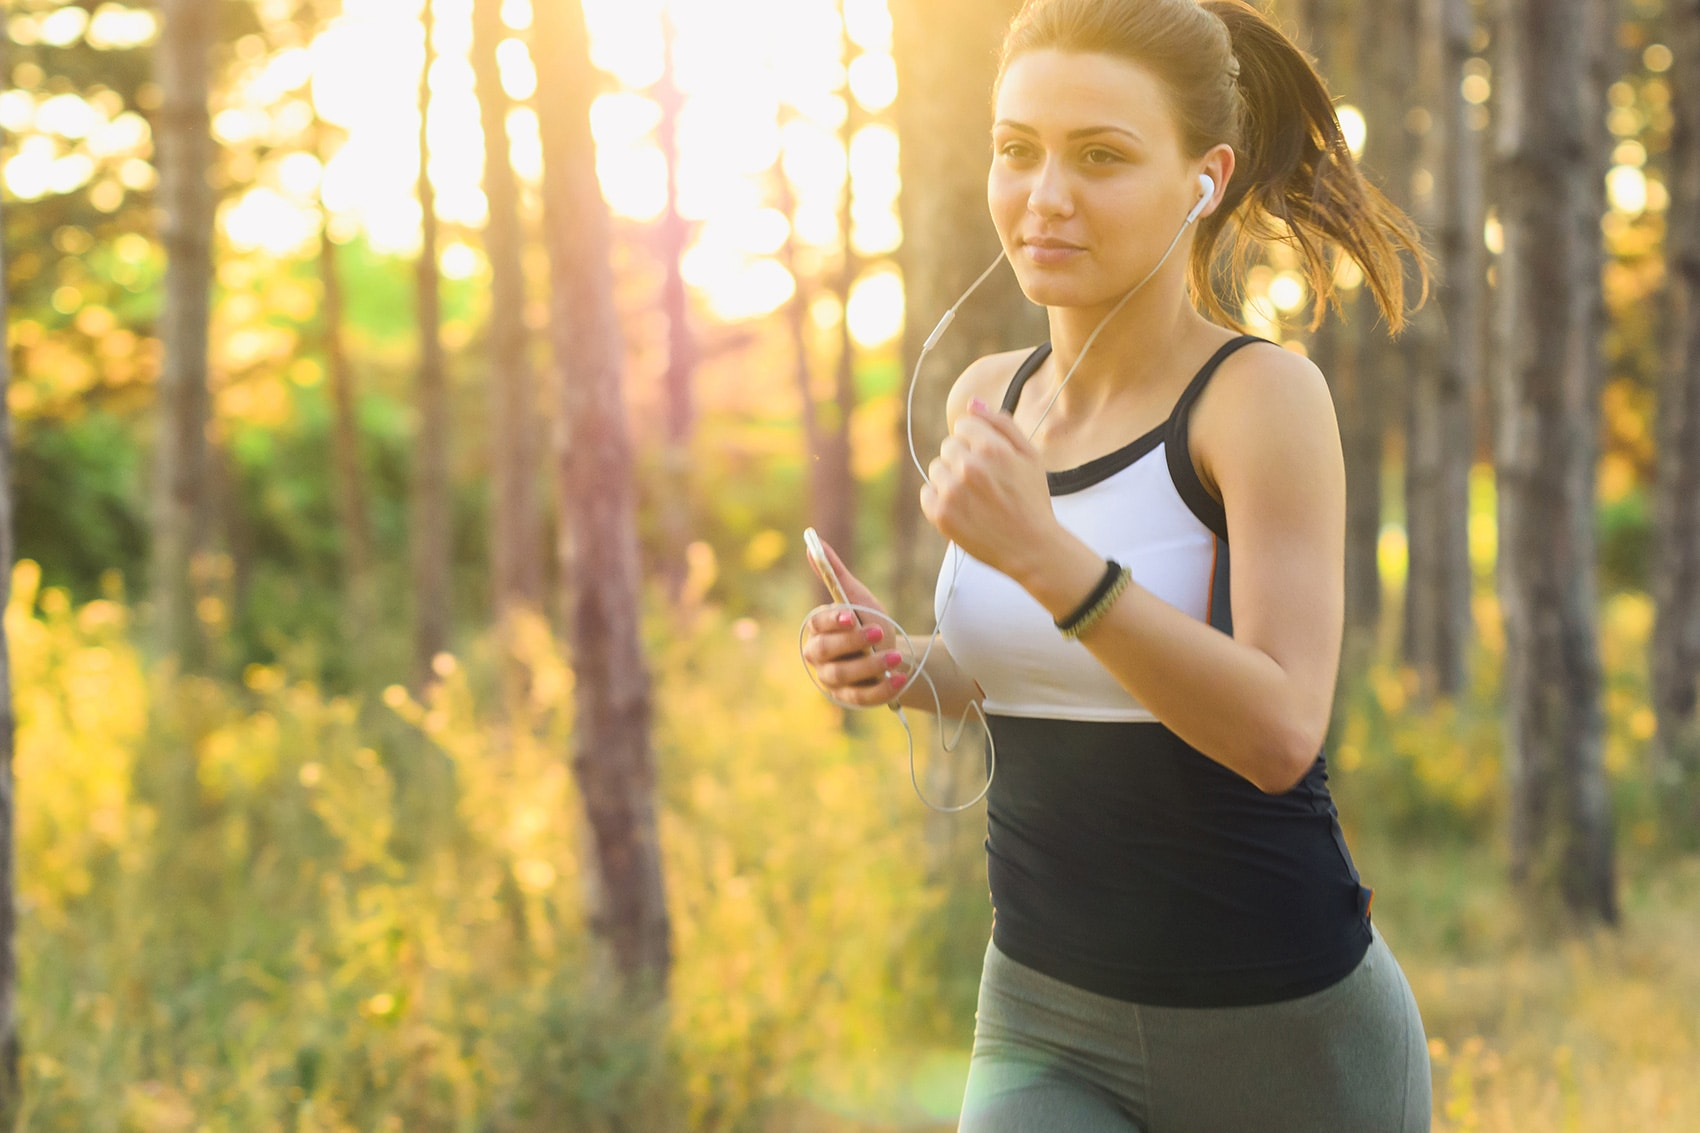 Young woman running in the nature holding a phone in her hand to listen music